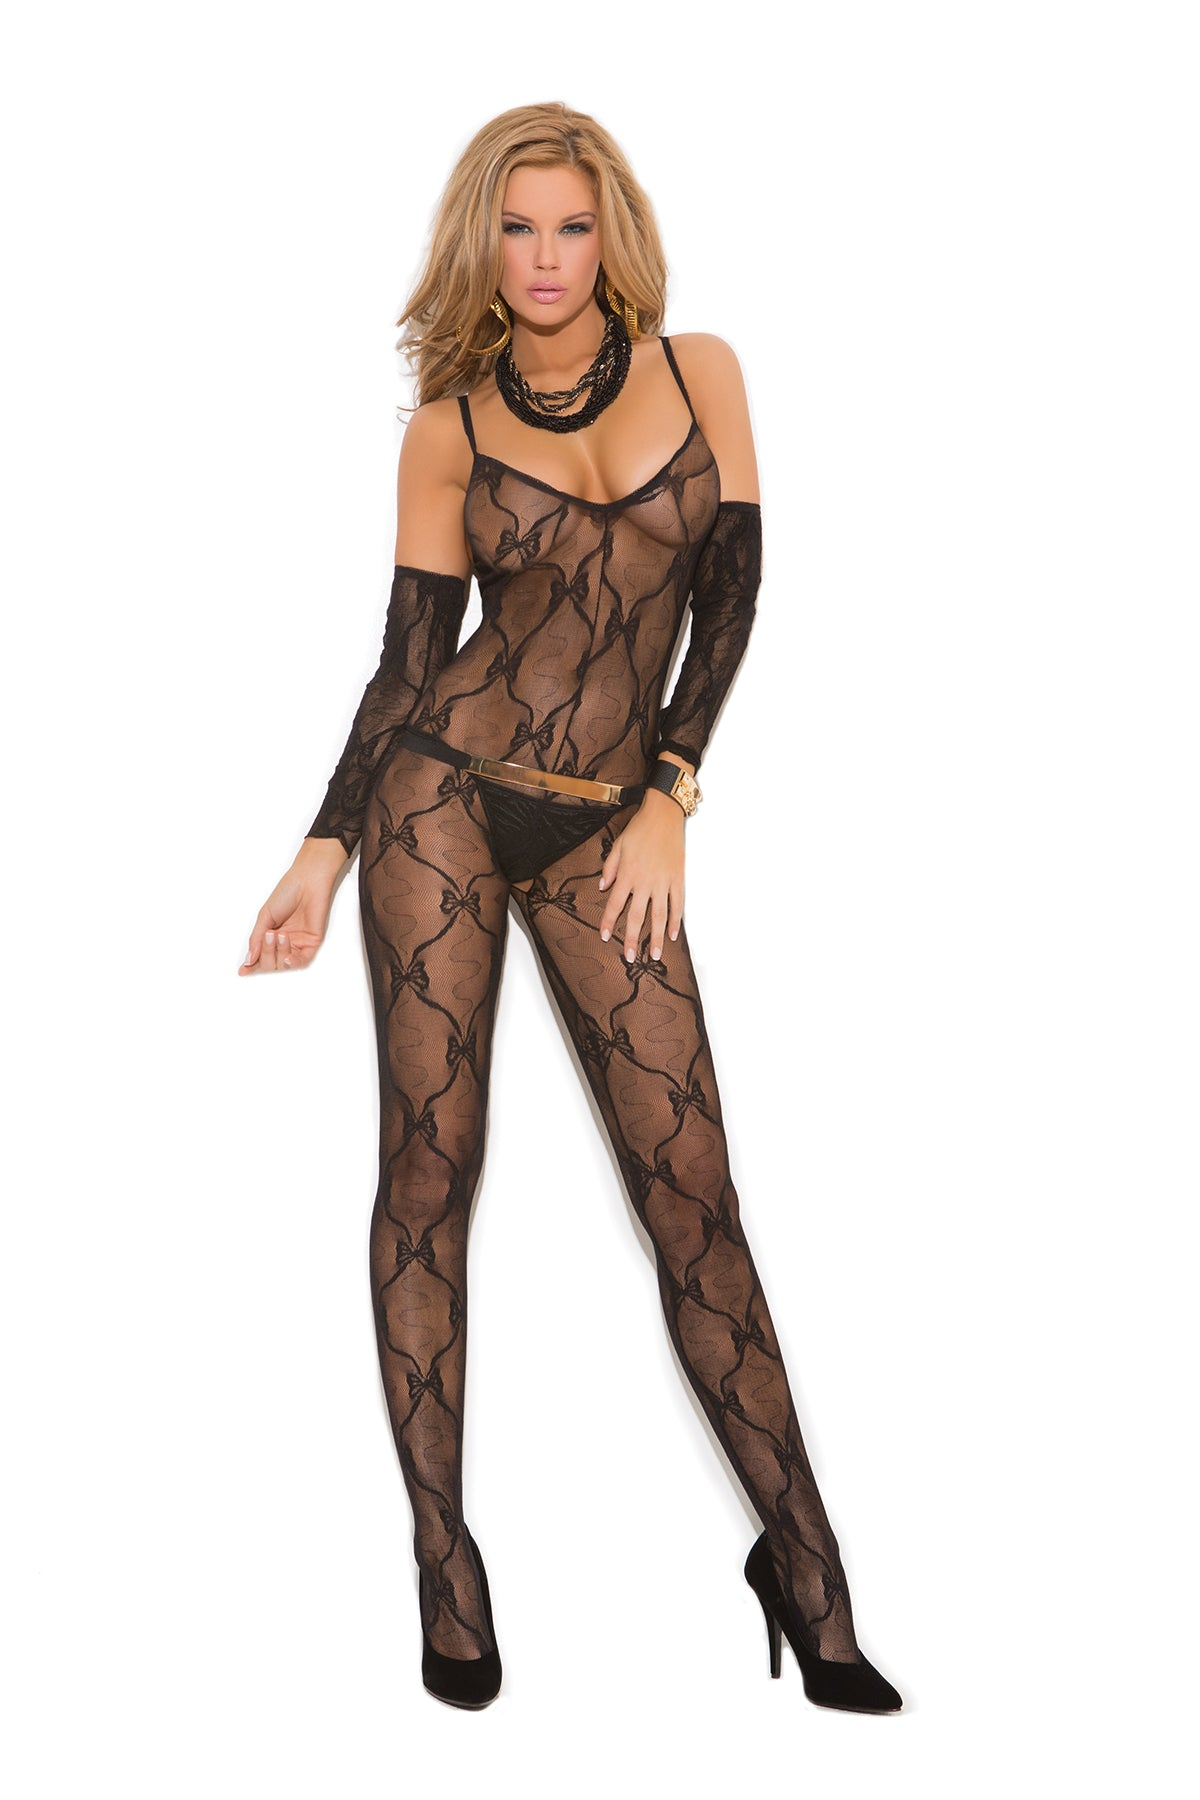 BOWTIE BODYSTOCKING W/ GLOVES